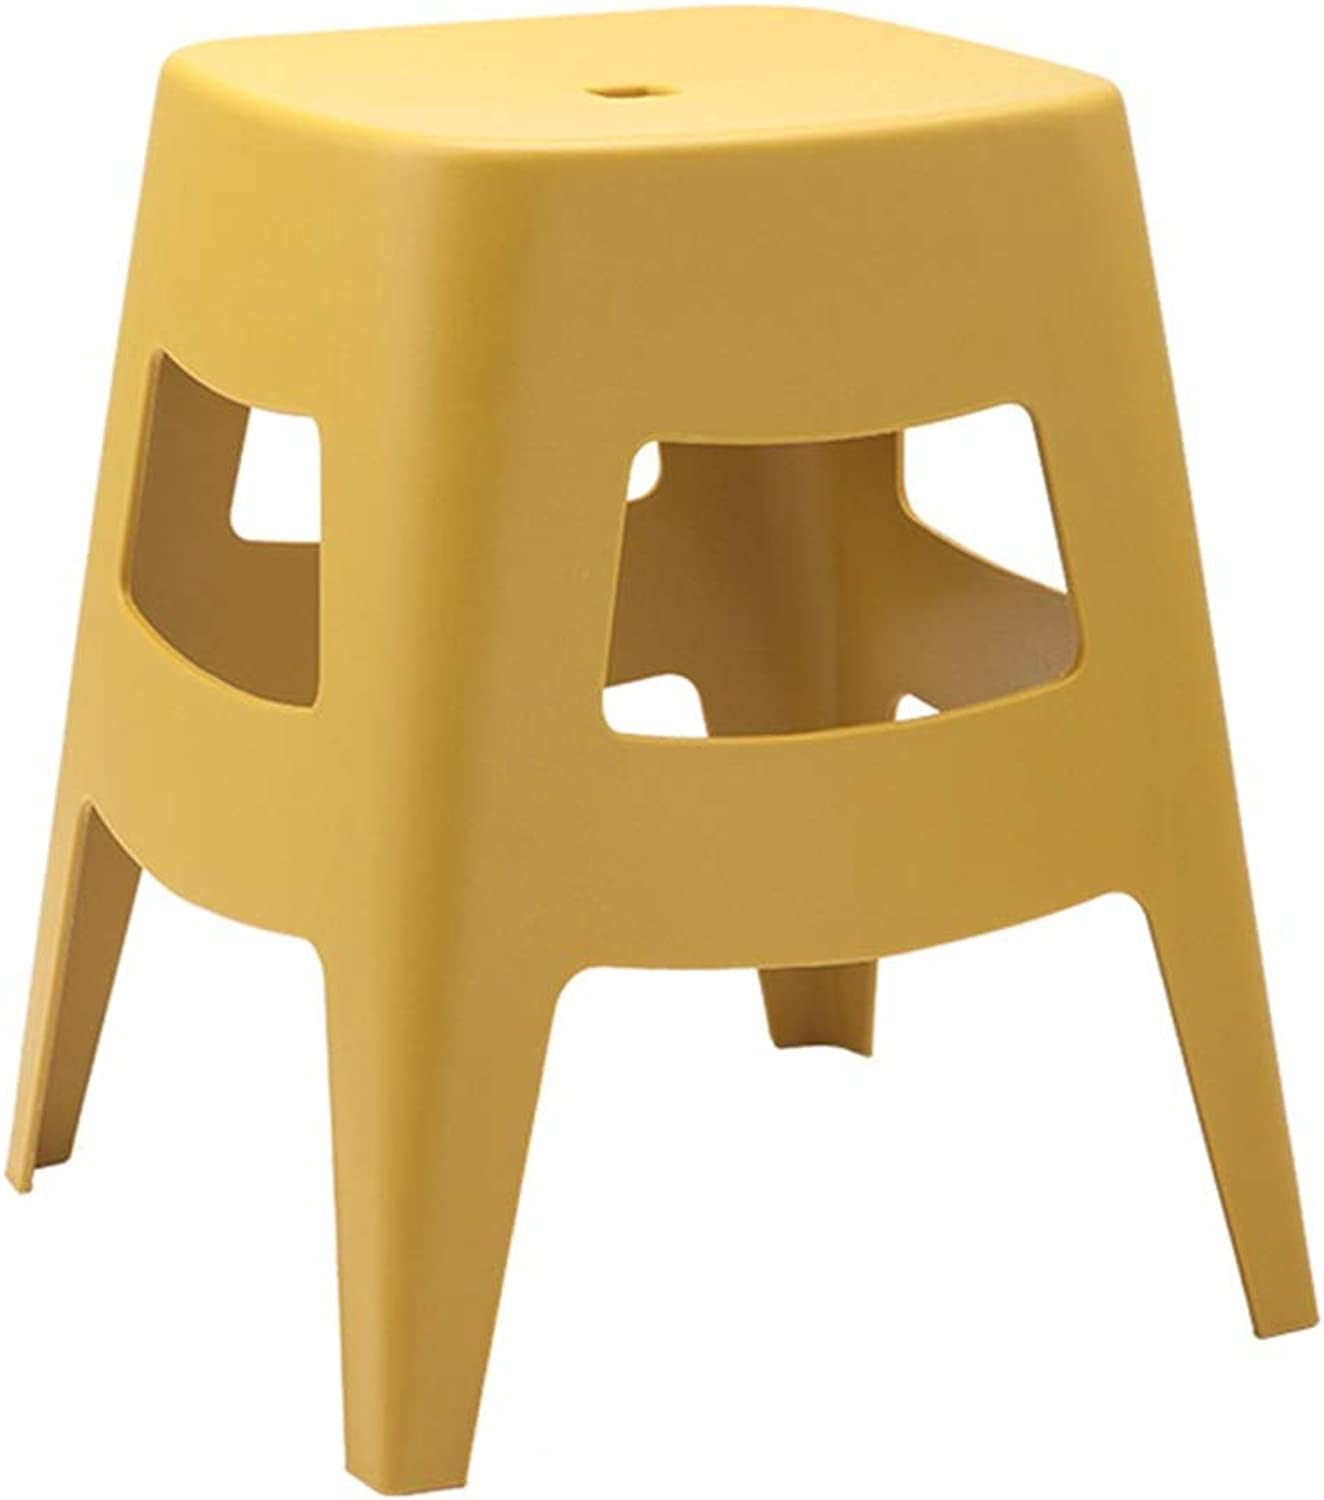 ZHAOYONGLI Footstools,Otools Household Plastic Stool Bathroom Waterproof Multi-Function Anti-Slip Stool Thick (color   Ginger Yellow, Size   38  38  46cm)